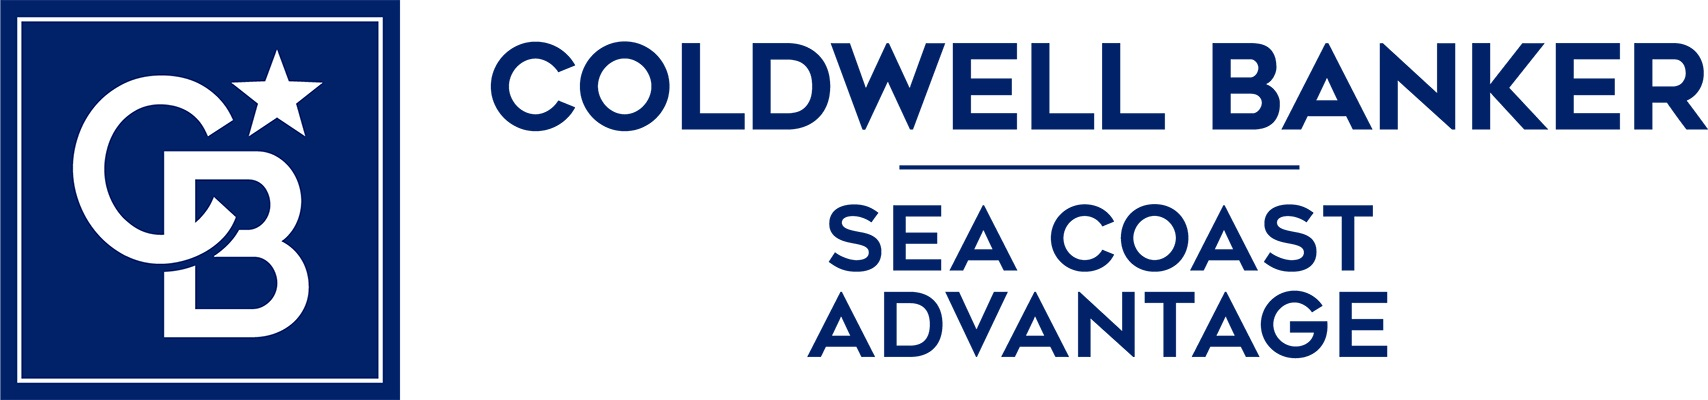 Michael Tausch - Coldwell Banker Sea Coast Advantage Realty